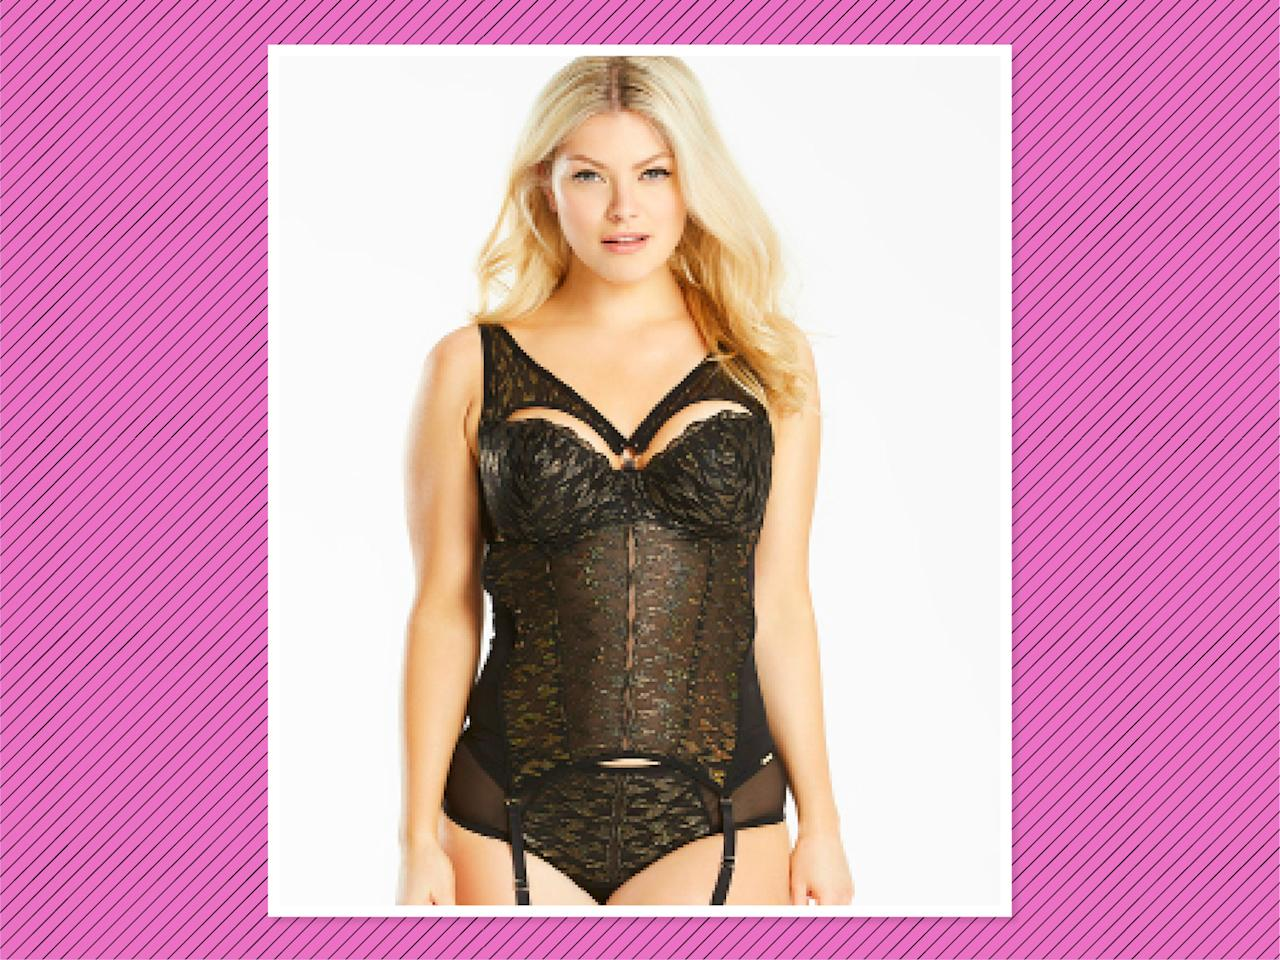 """<p>Figleaves Curve Mistress Black/Gold Basque, $68, <a rel=""""nofollow"""" href=""""https://www.simplybe.com/en-us/products/the-games-mistress-black-gold-basque/p/HP501#v=color%3AHP501_BLACK%2FGOLD%7C"""">Simply Be</a> (Photo: Simply Be) </p>"""